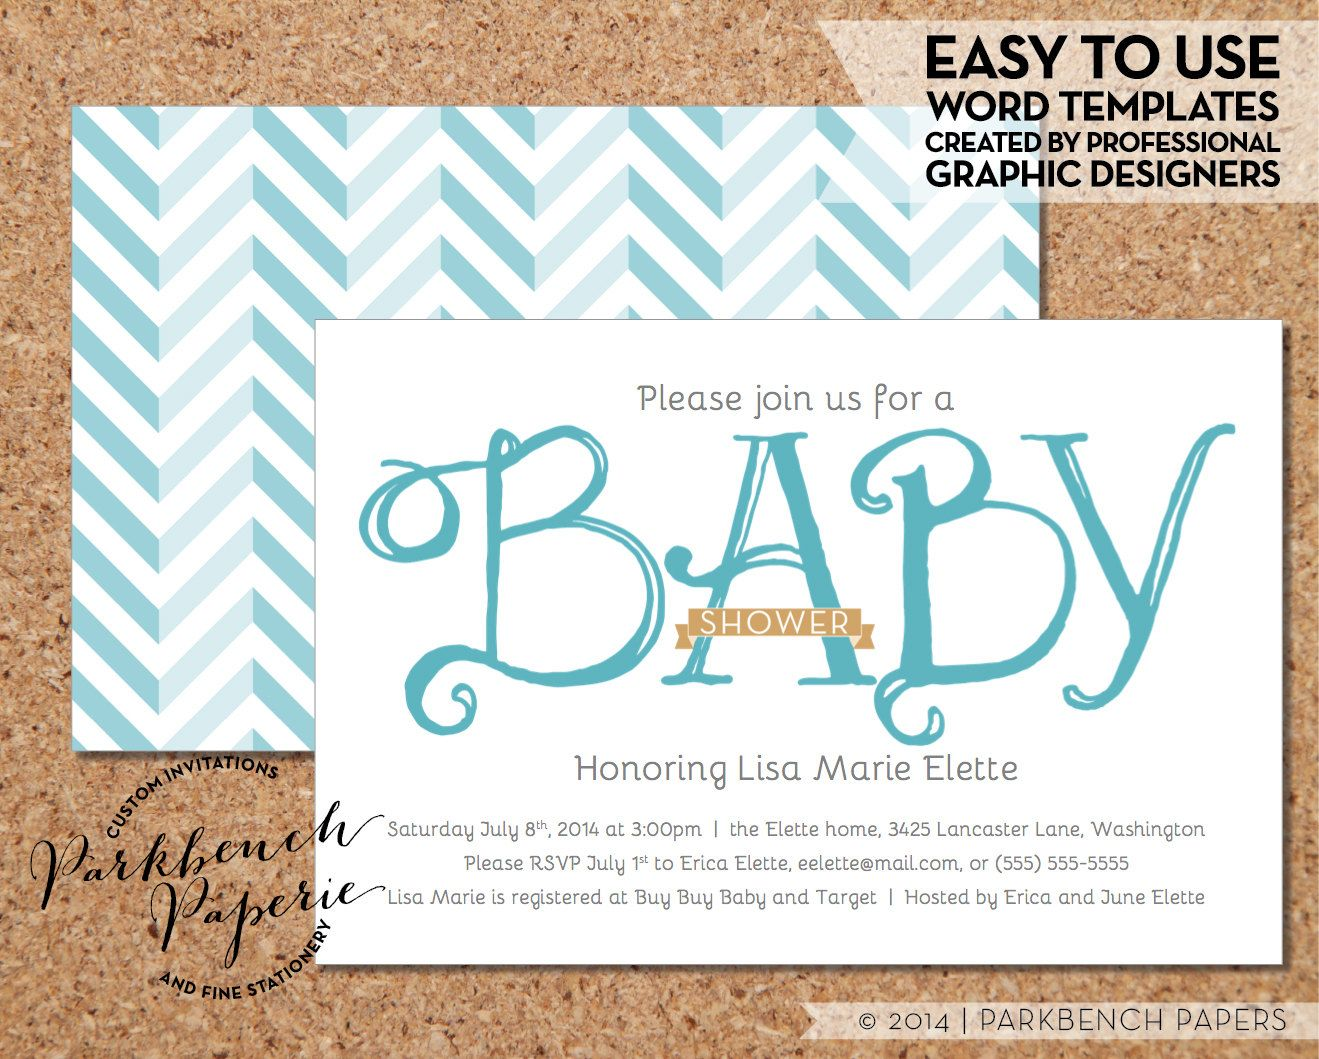 Baby Shower Invitations For Word Templates Mesmerizing Baby Shower Invitation  Blue Ribbon  Diy Editable Word Template .